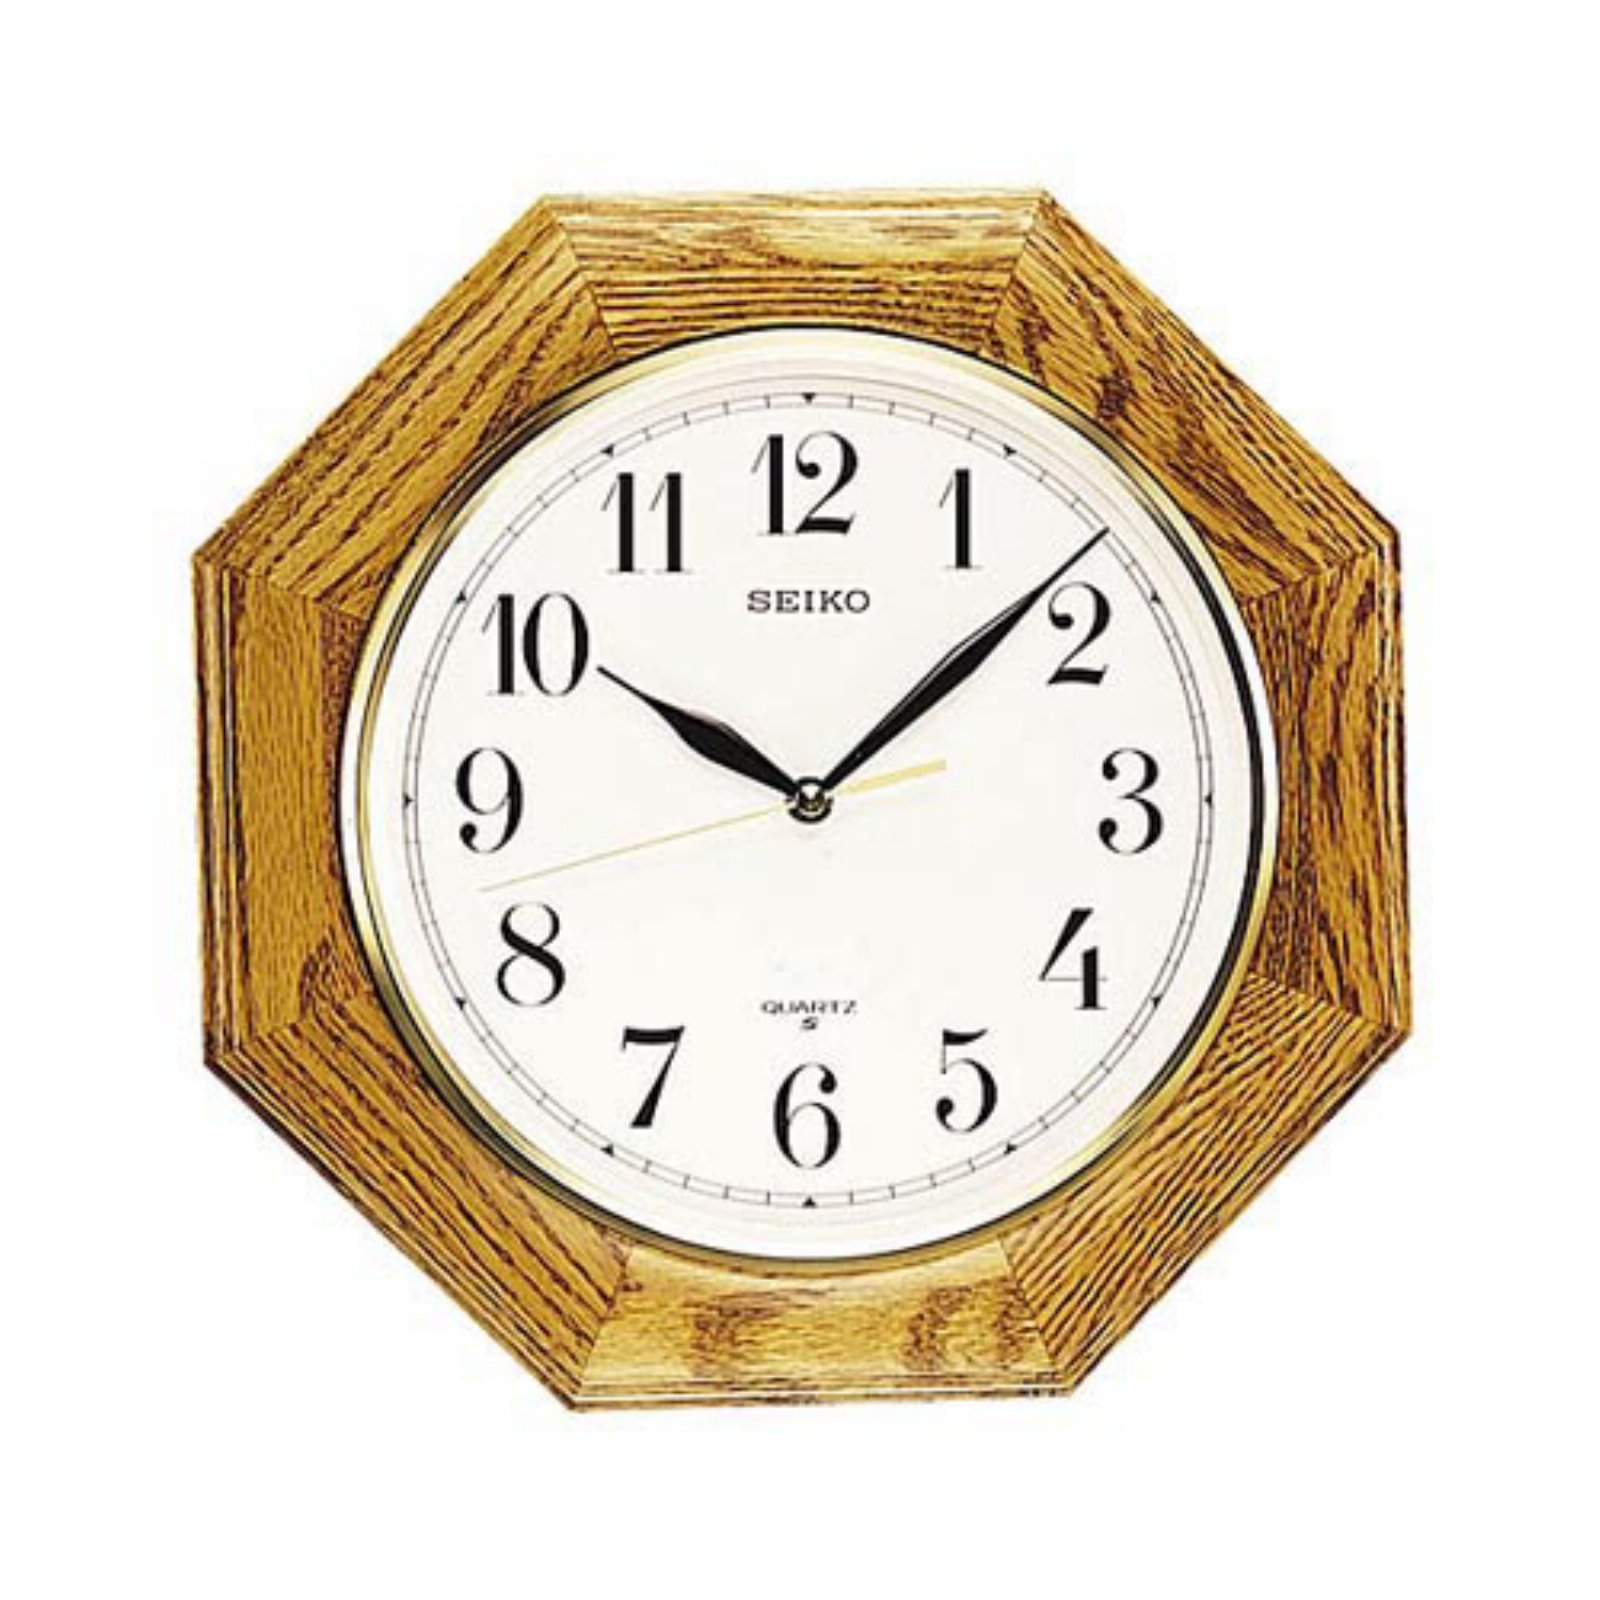 Seiko Medium Brown Oak 12 Inch Wall Clock